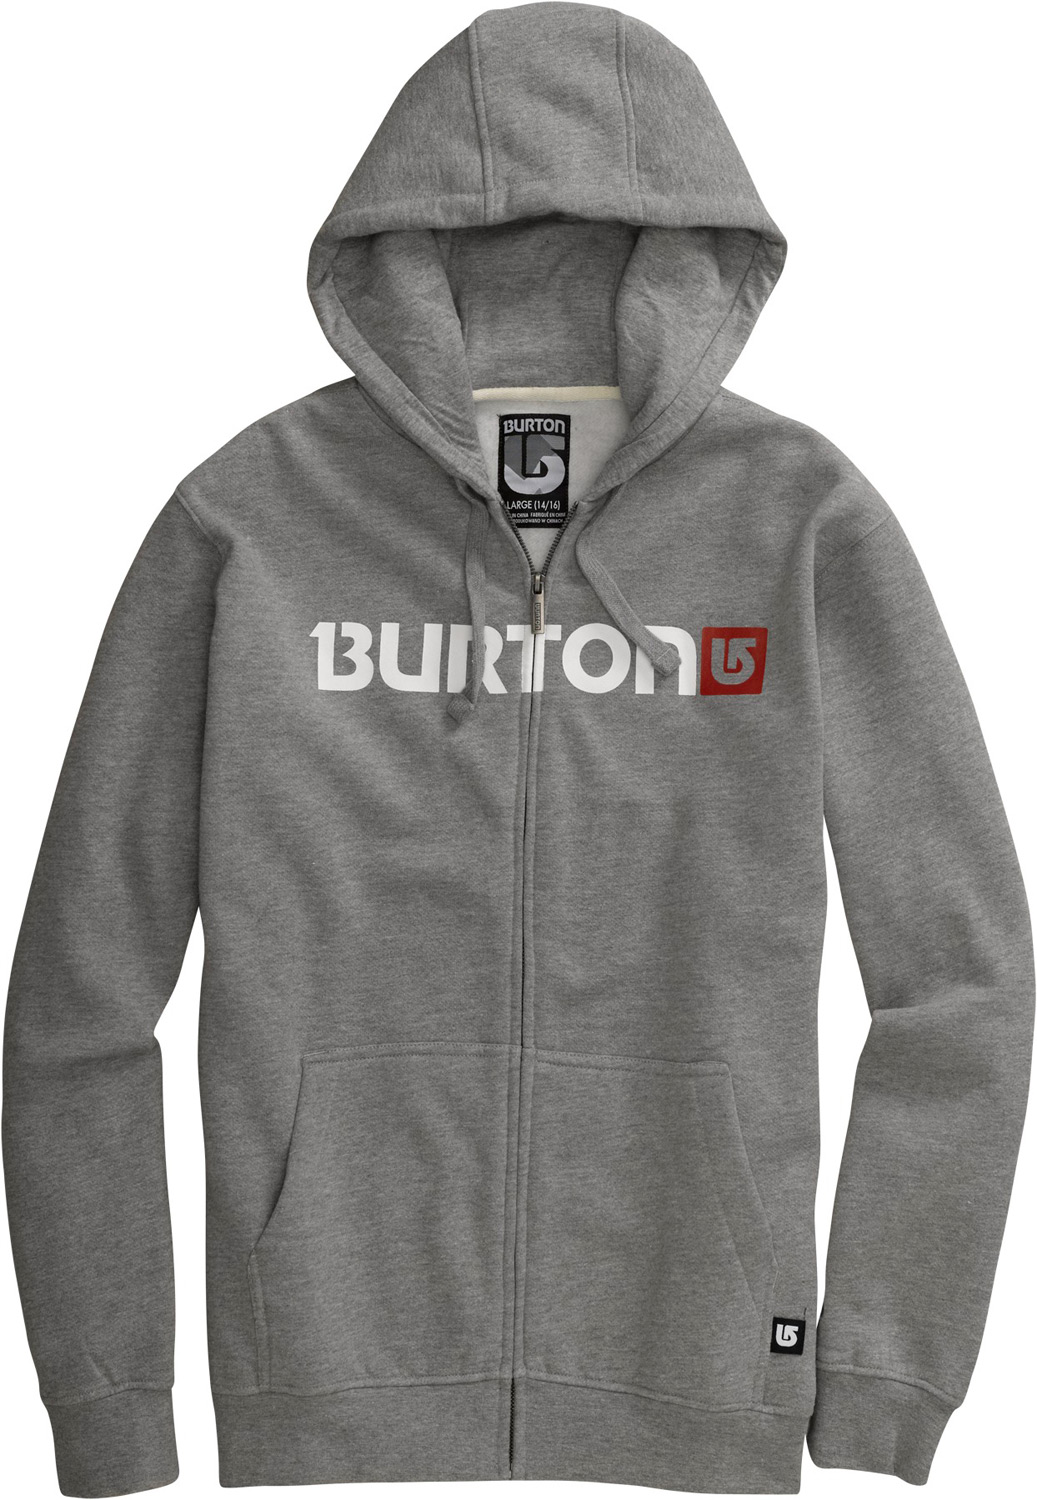 Snowboard Key Features of the Burton Logo Horizontal Hoodie: 80% Cotton/20% Polyester, 300G Fleece Kangaroo Hand Warmer Pocket w/Interior Media Stash Signature Fit Hidden Side Seam Stash Pocket Word Marker Logo Print on Chest S-XL - $41.95